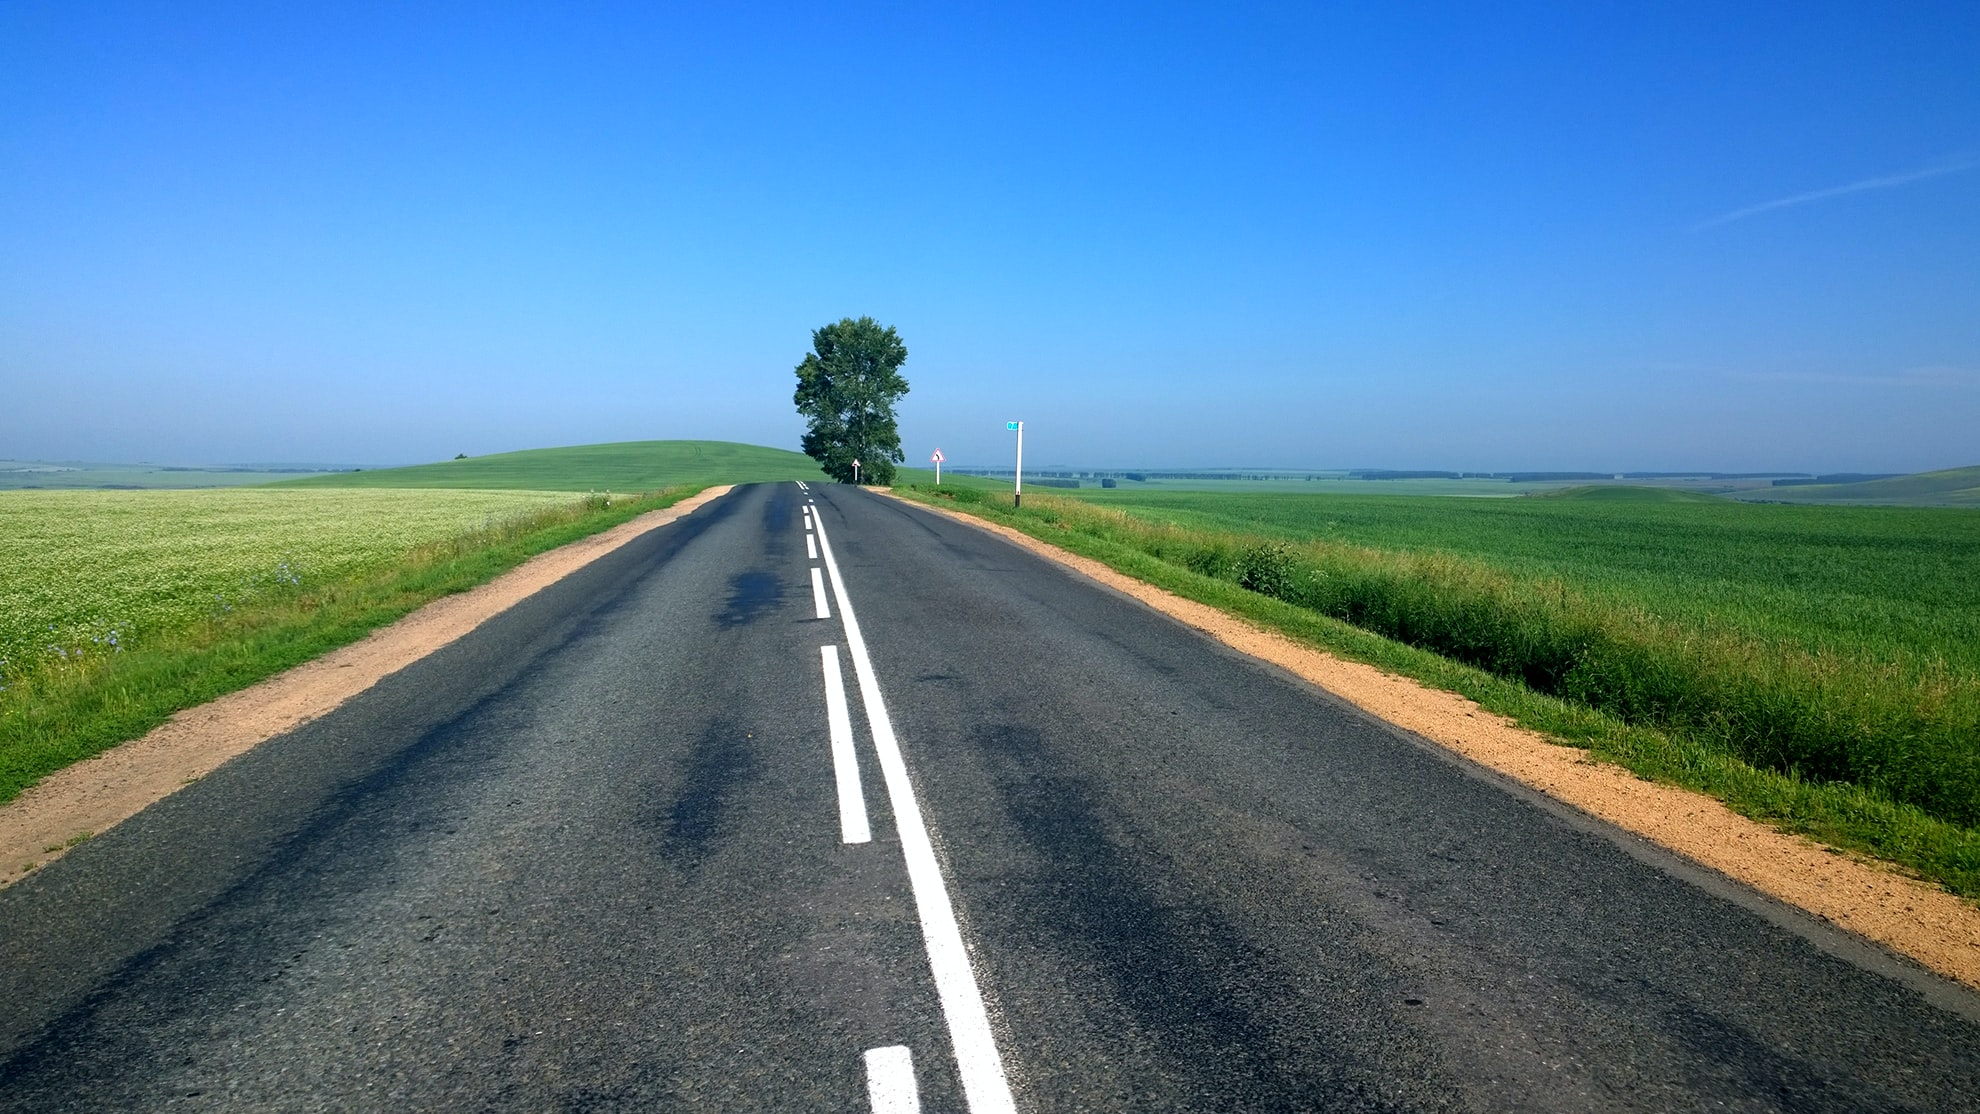 An open country road surrounded by green farm field